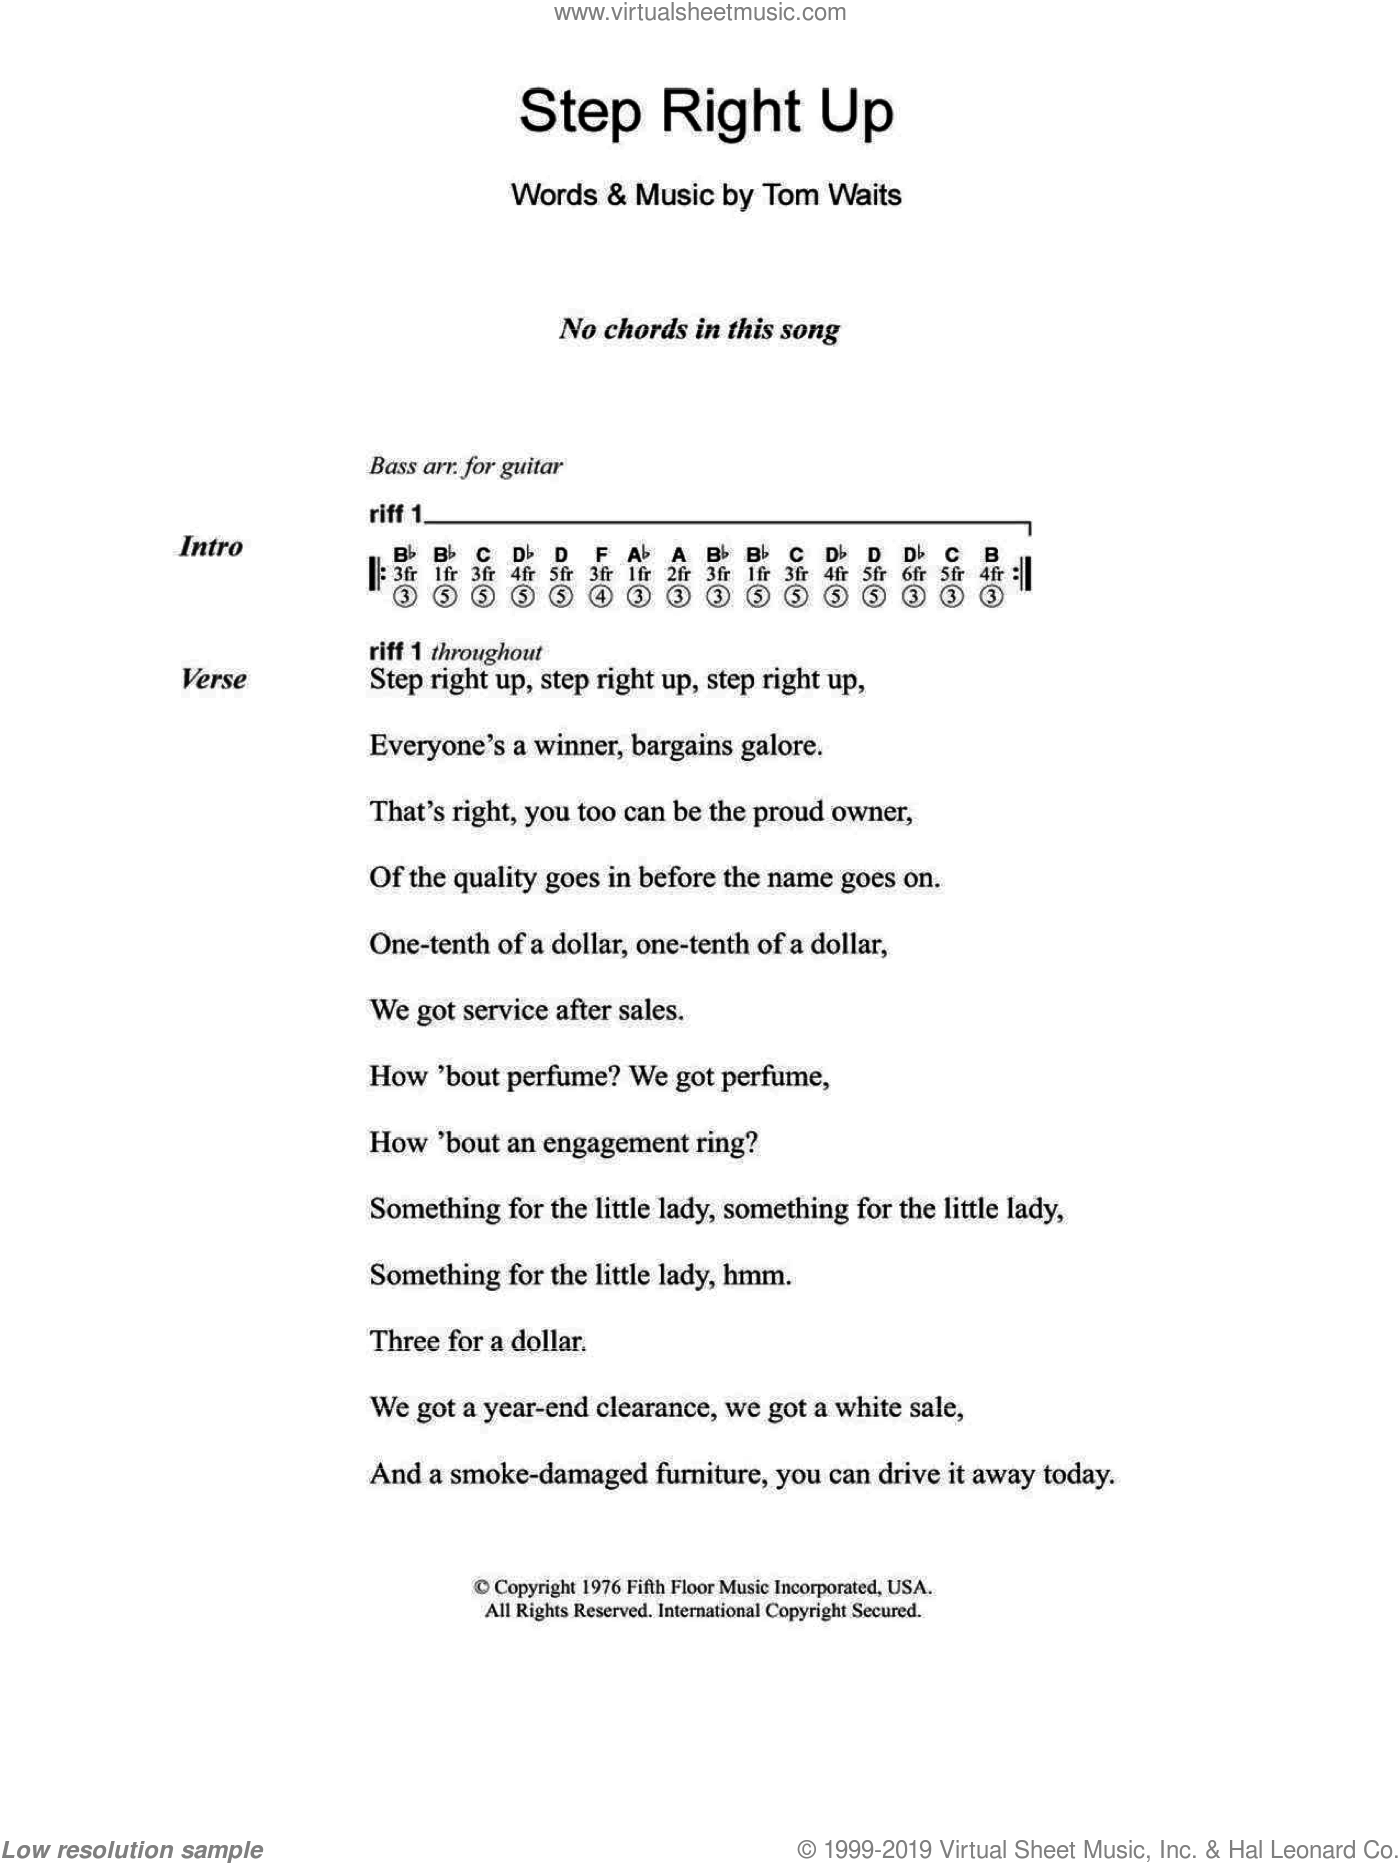 Waits - Step Right Up sheet music for guitar (chords)